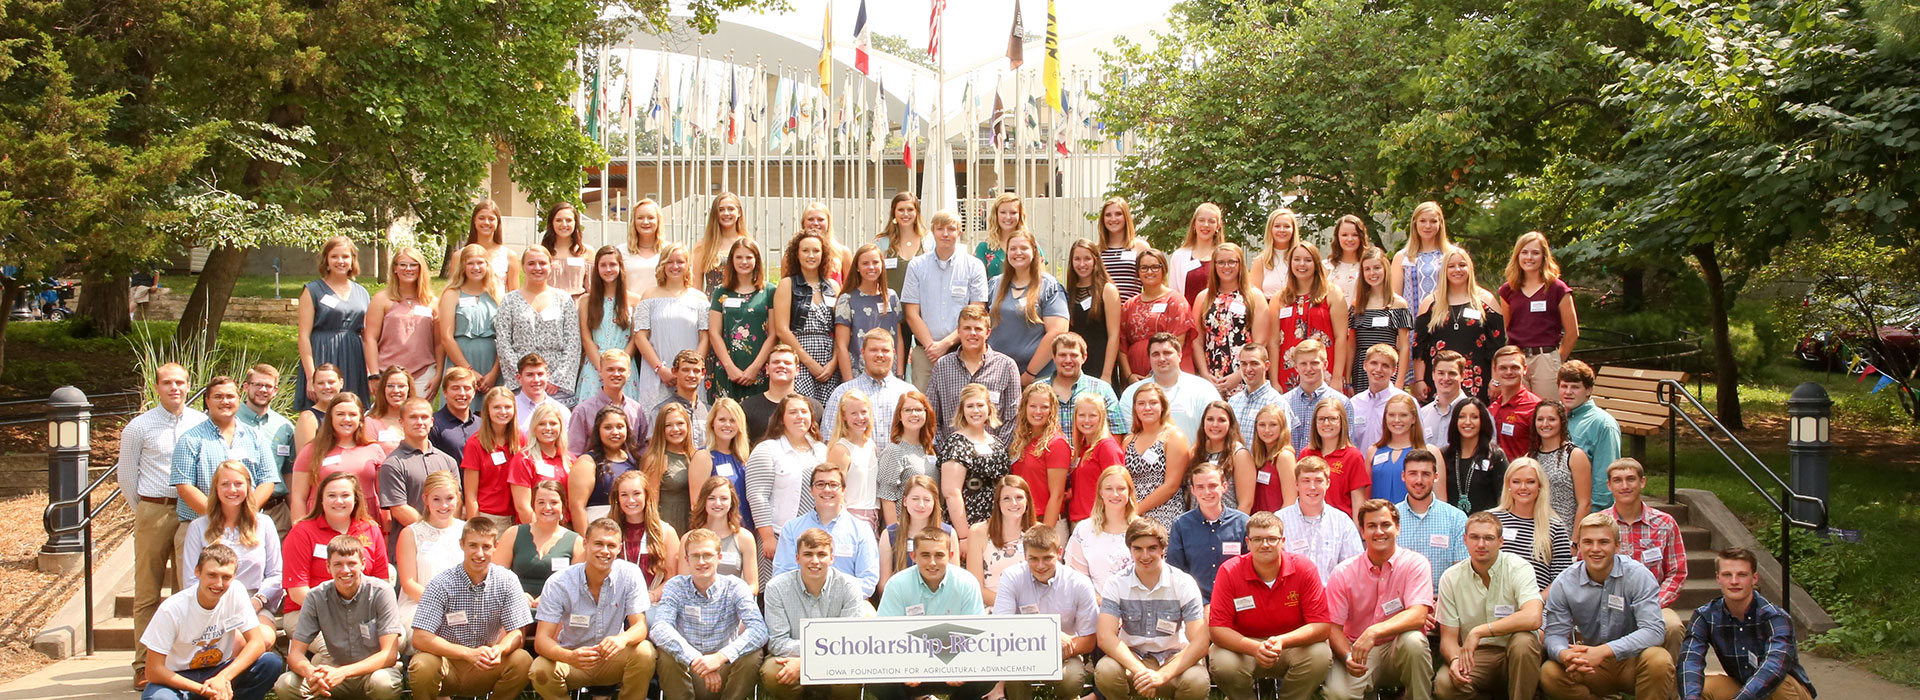 the big group scholarship shot